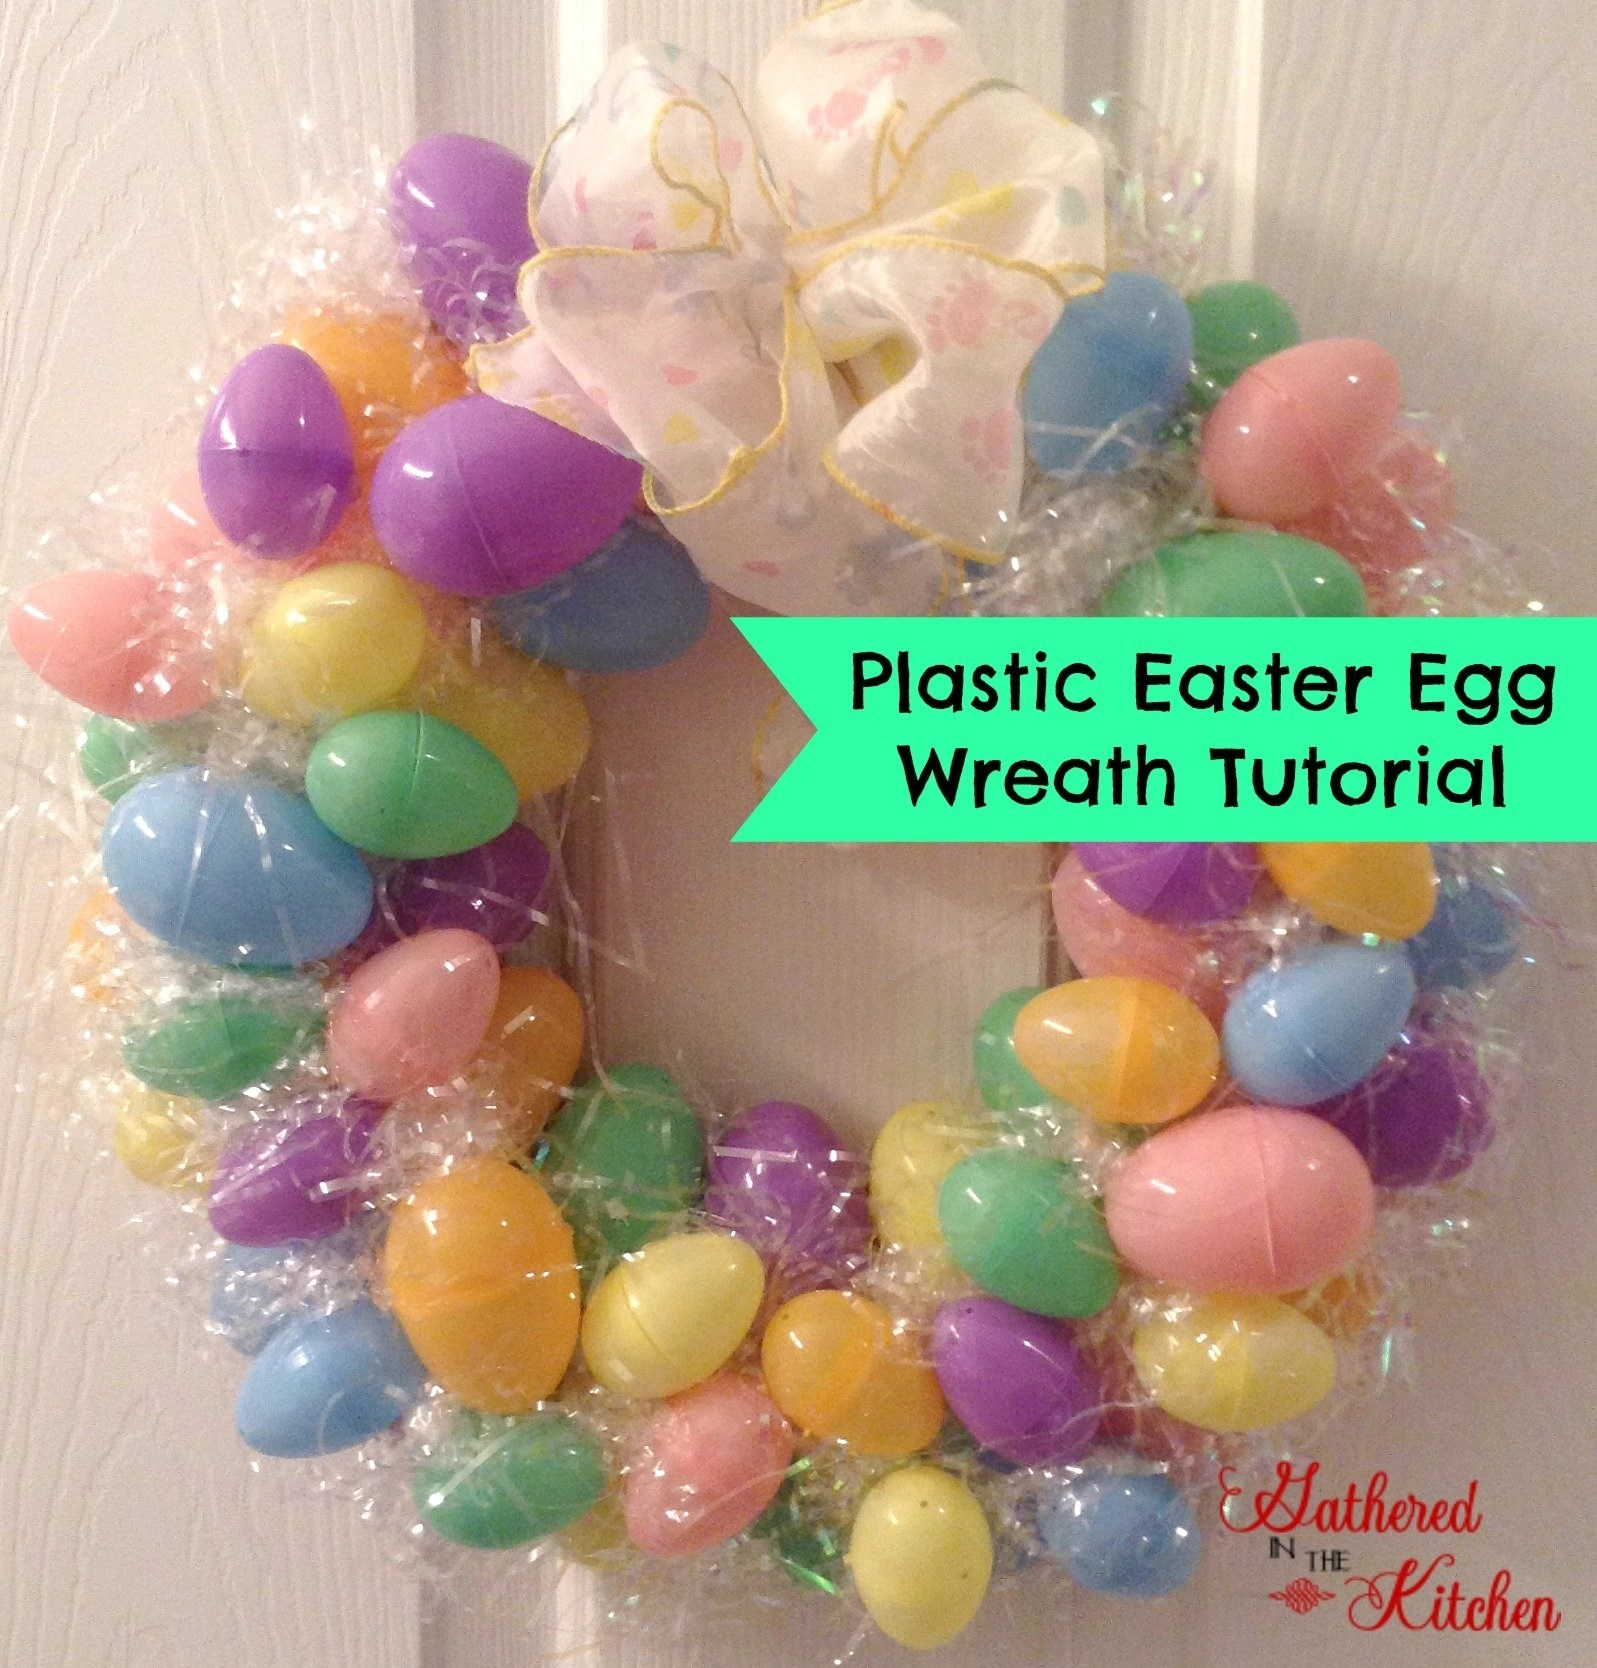 DIY Plastic Easter Egg Wreath Tutorial